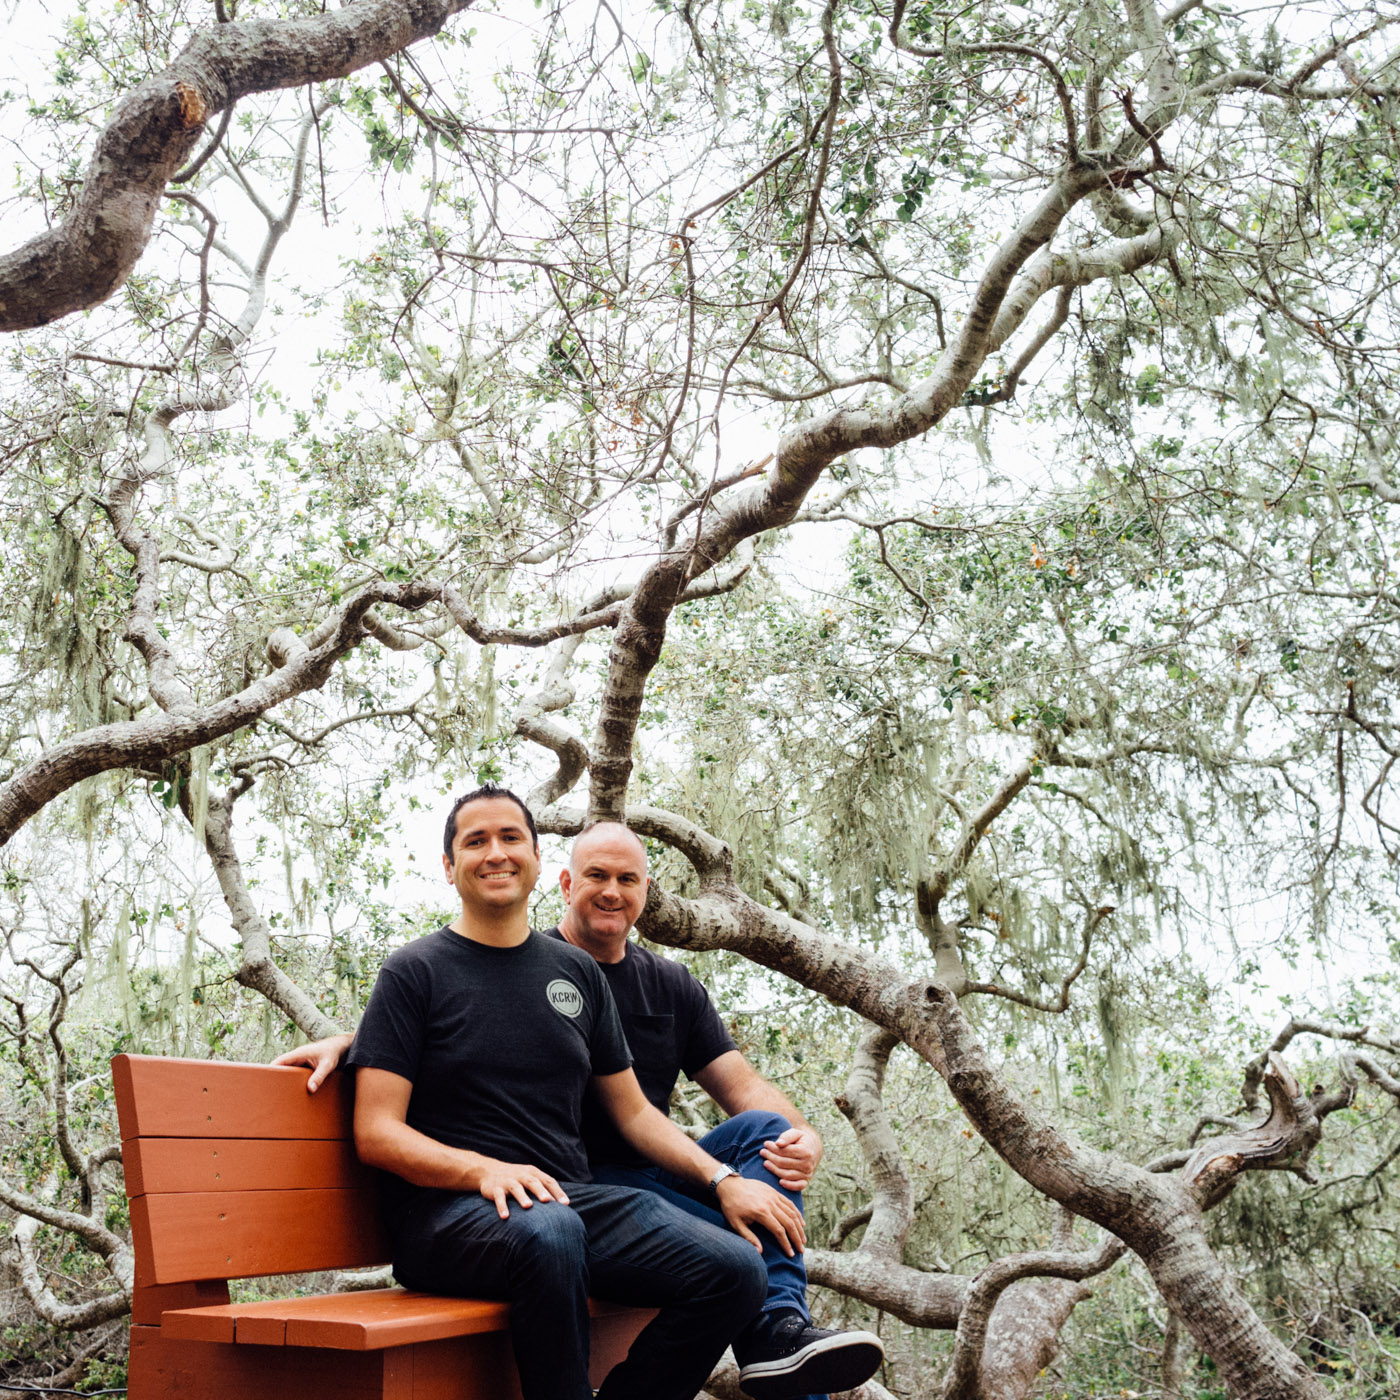 Gabe and Steve enjoying the Elfin Forest - Let's Photo Trip